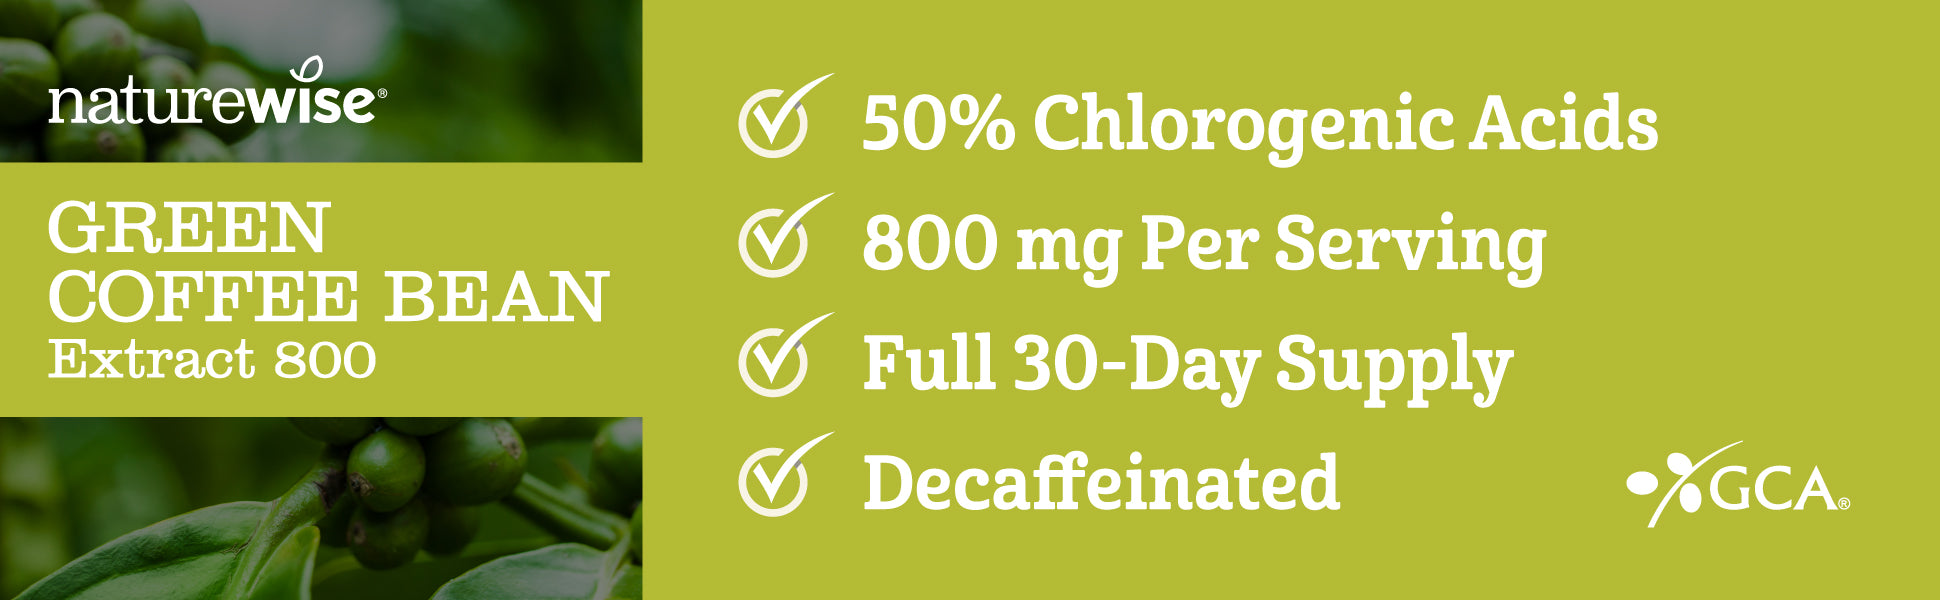 50 percent chlorogenic acids